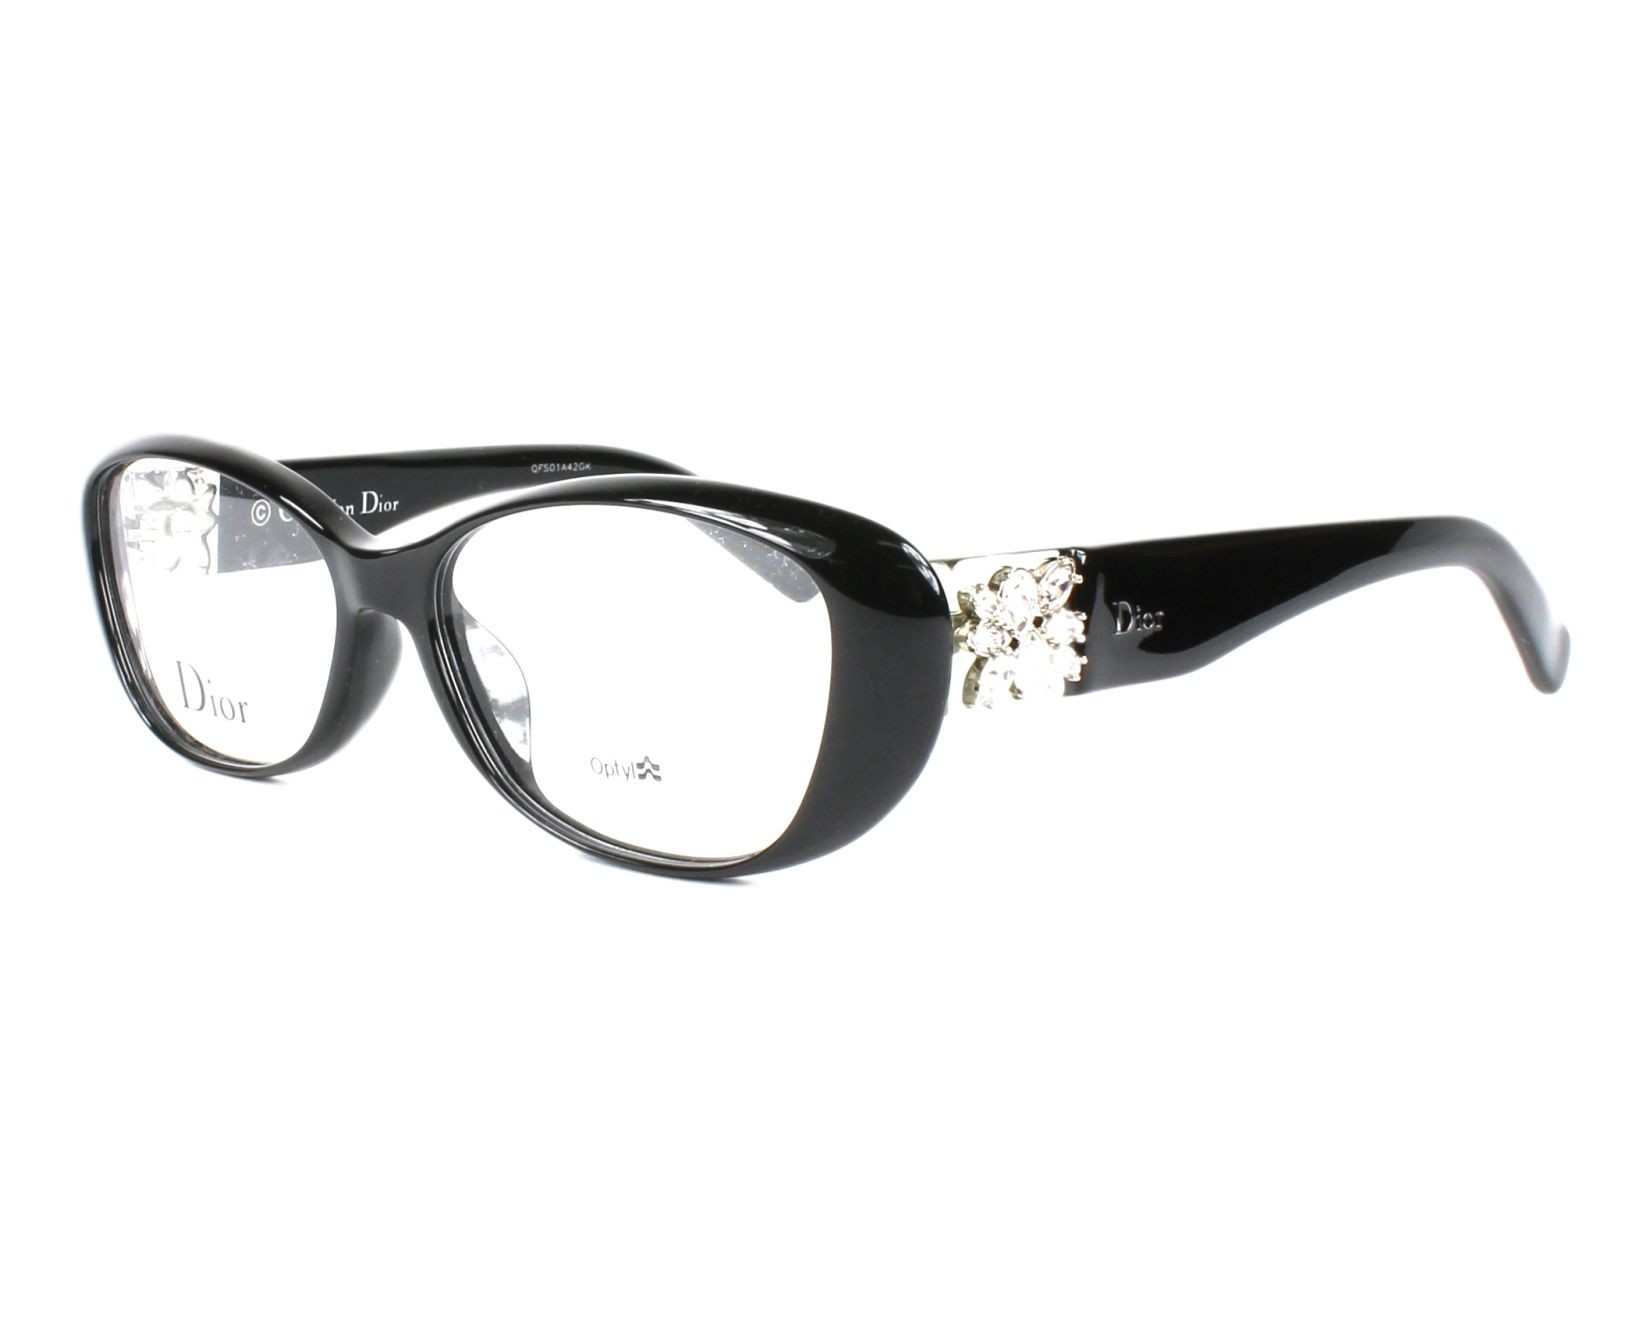 ea4fb4a2fe6 Christian Dior Glasses Frames Uk